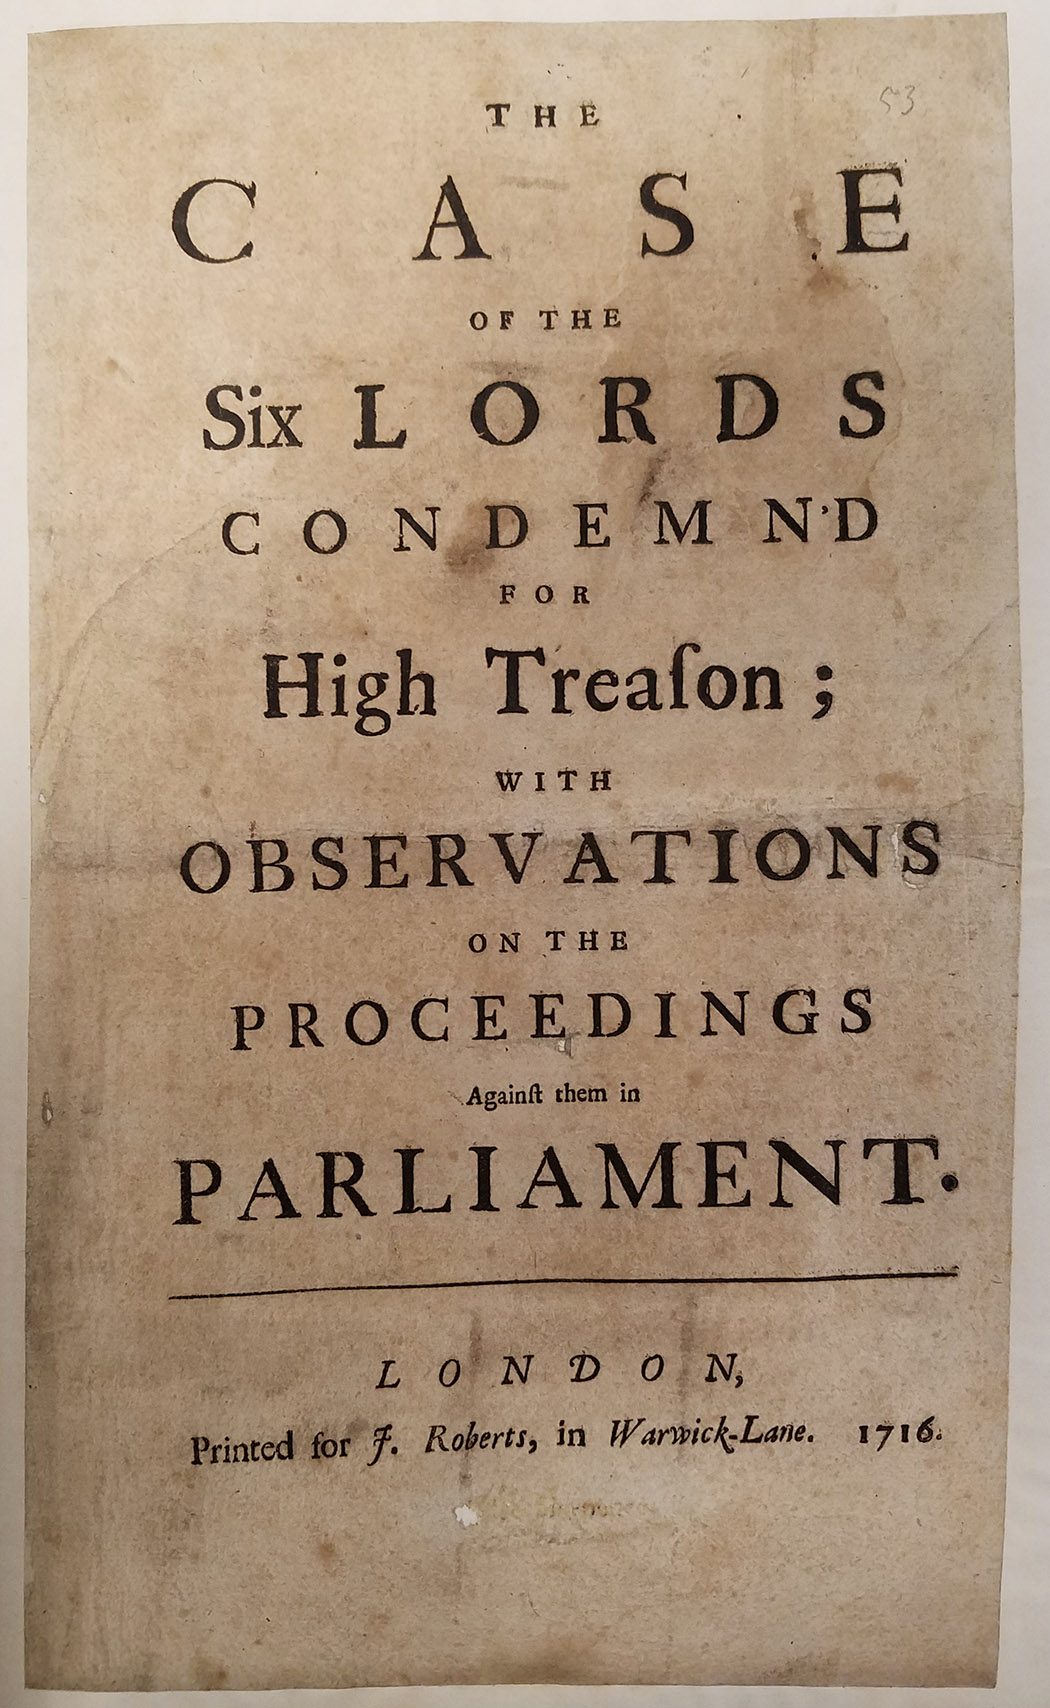 Depiction of The case of the six lords condemned for high treason